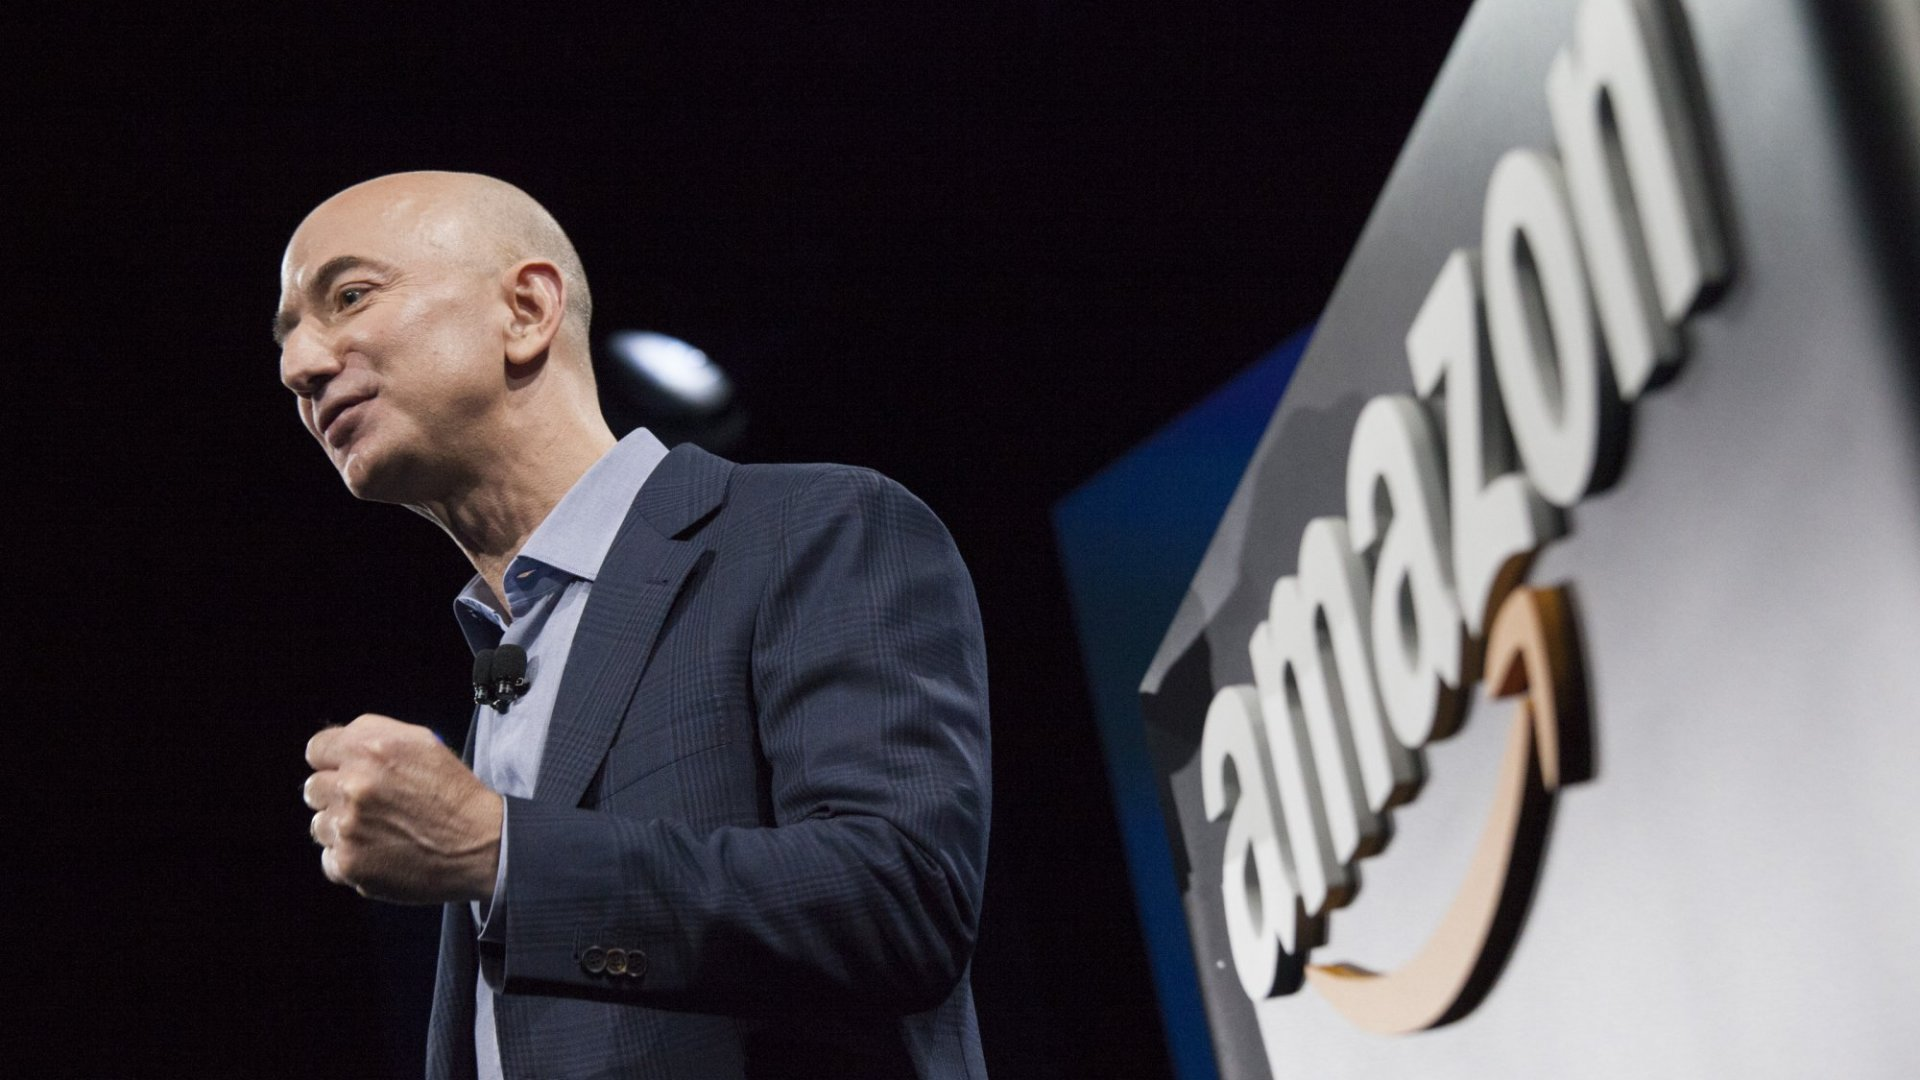 'A Farce.' 'A Sham.' 'A Stunt.' What Twitter Is Saying About Amazon's Search for a Second Headquarters